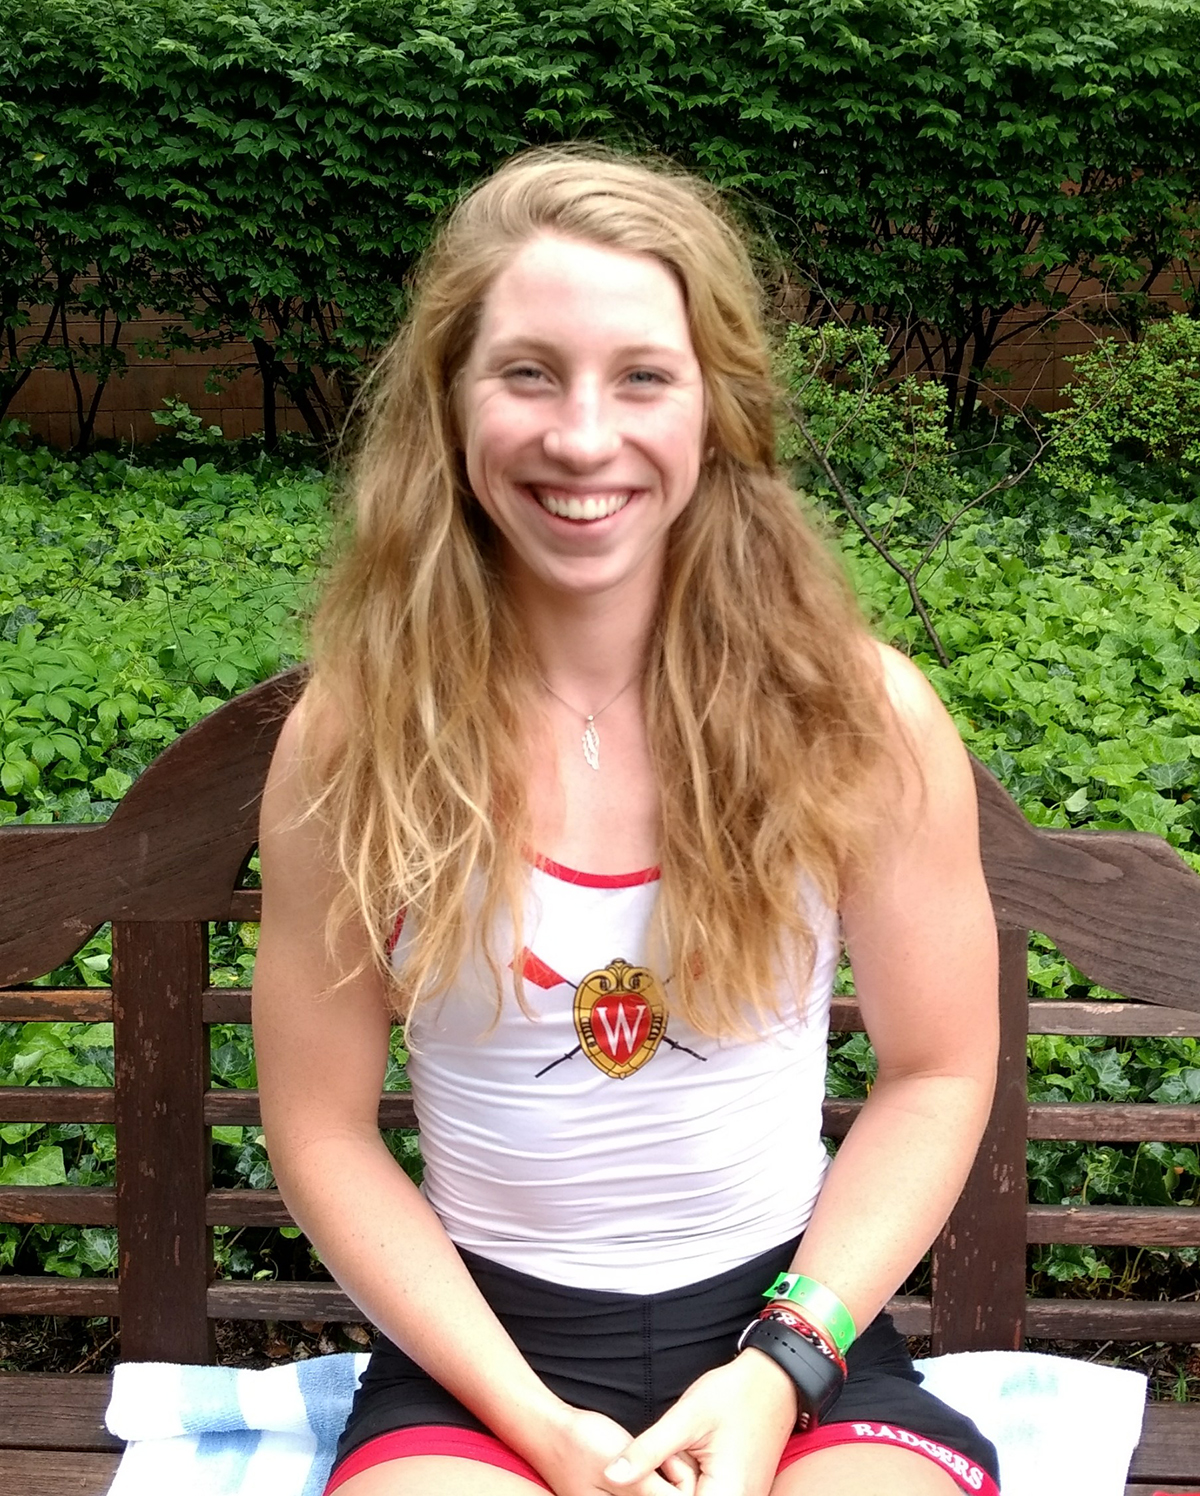 Hear Her Sports talks to U23 rower Maddie Wanamaker before she races at the World Championships in Bulgaria.